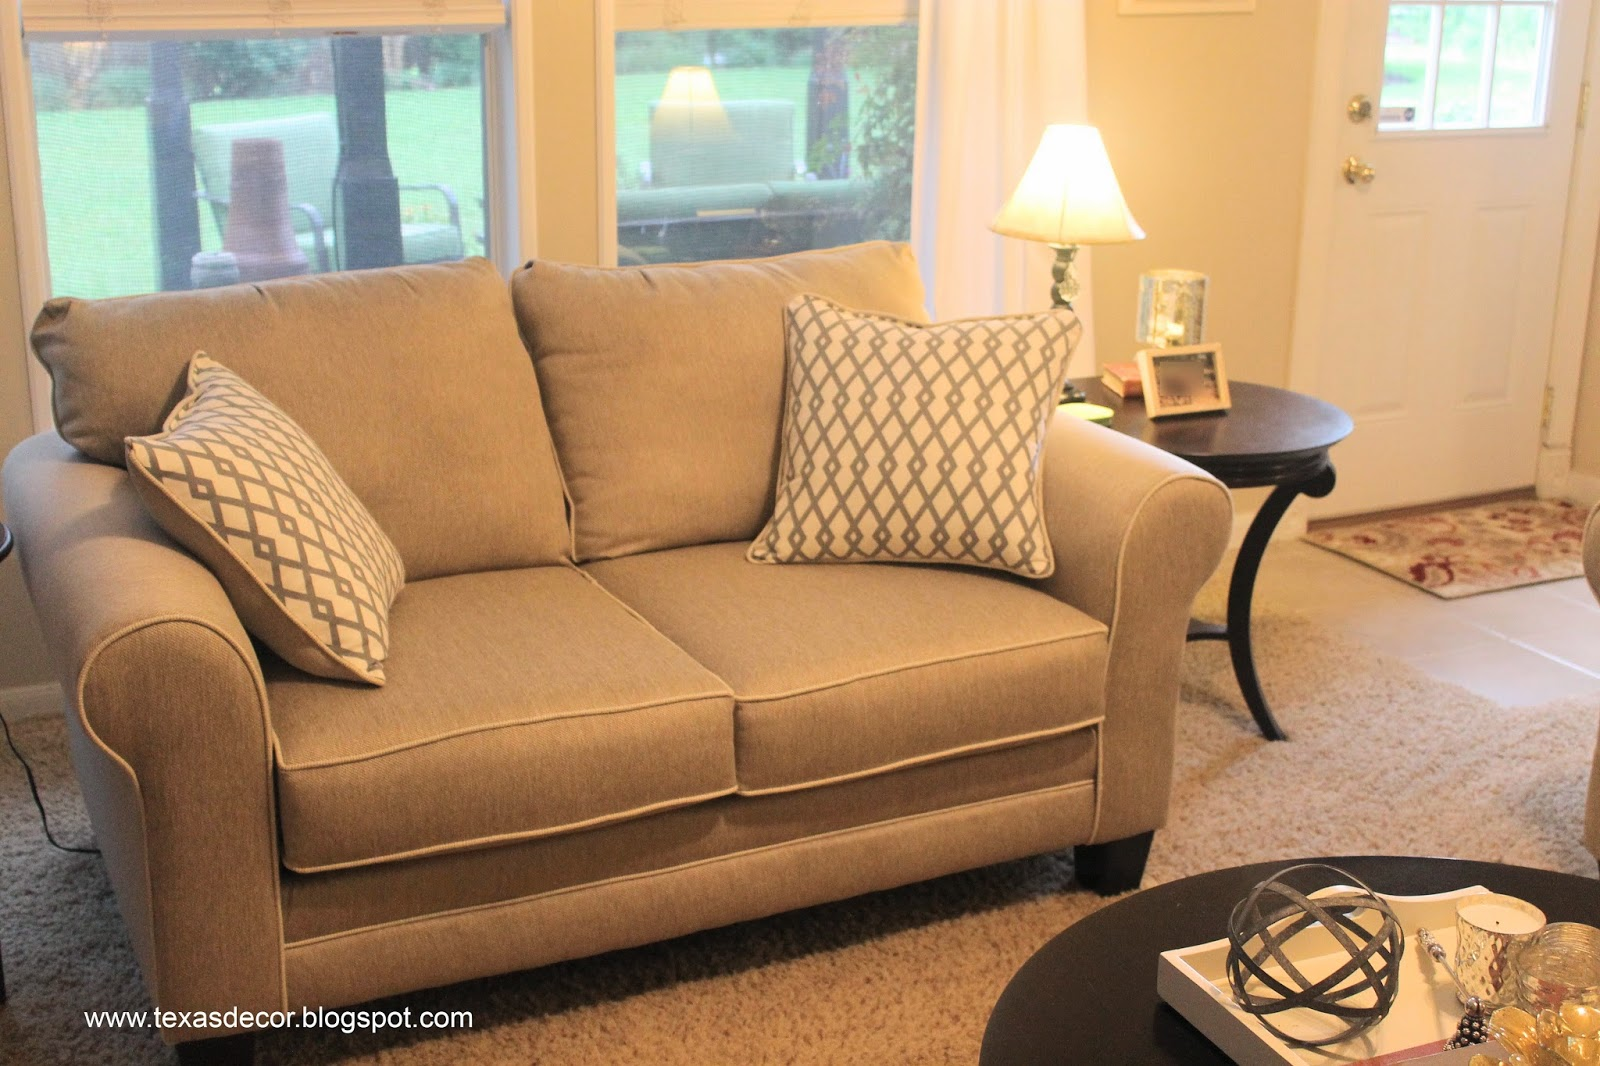 How To Re Plump Leather Sofa Cushions Fabric And Loveseat Restuffing Couch Home Improvement